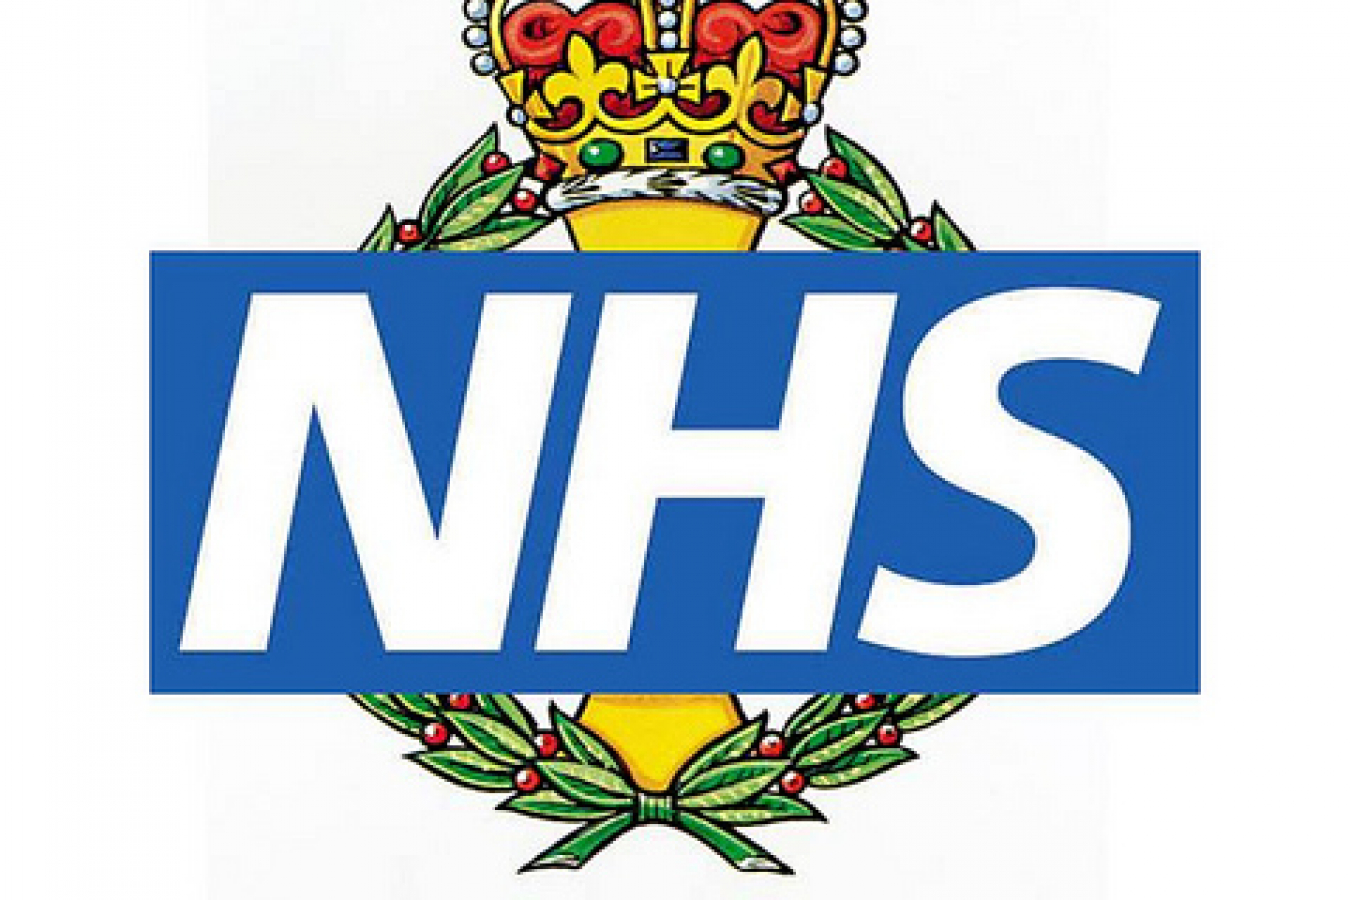 NHS National Health Service Ambulance Service logo